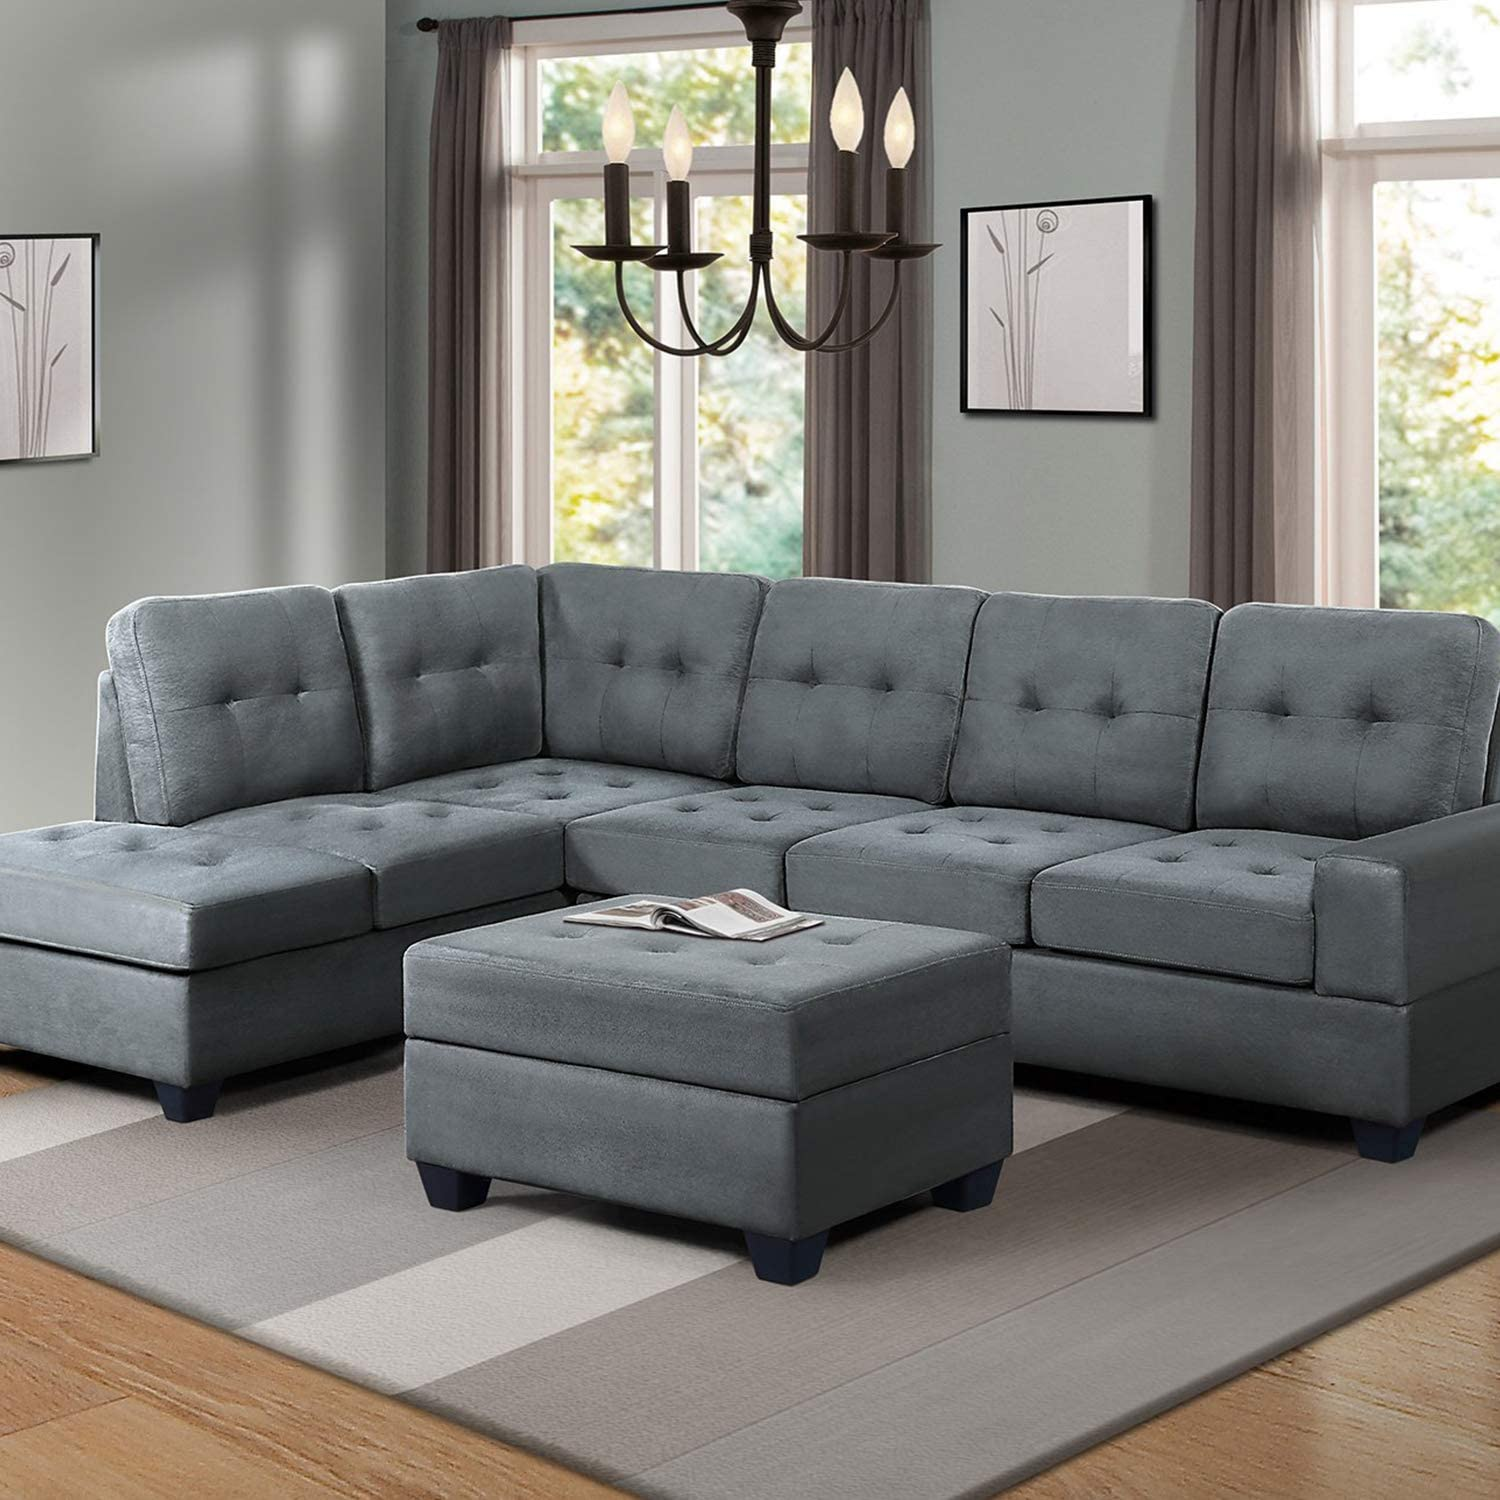 Chaise L shaped sectional with storage